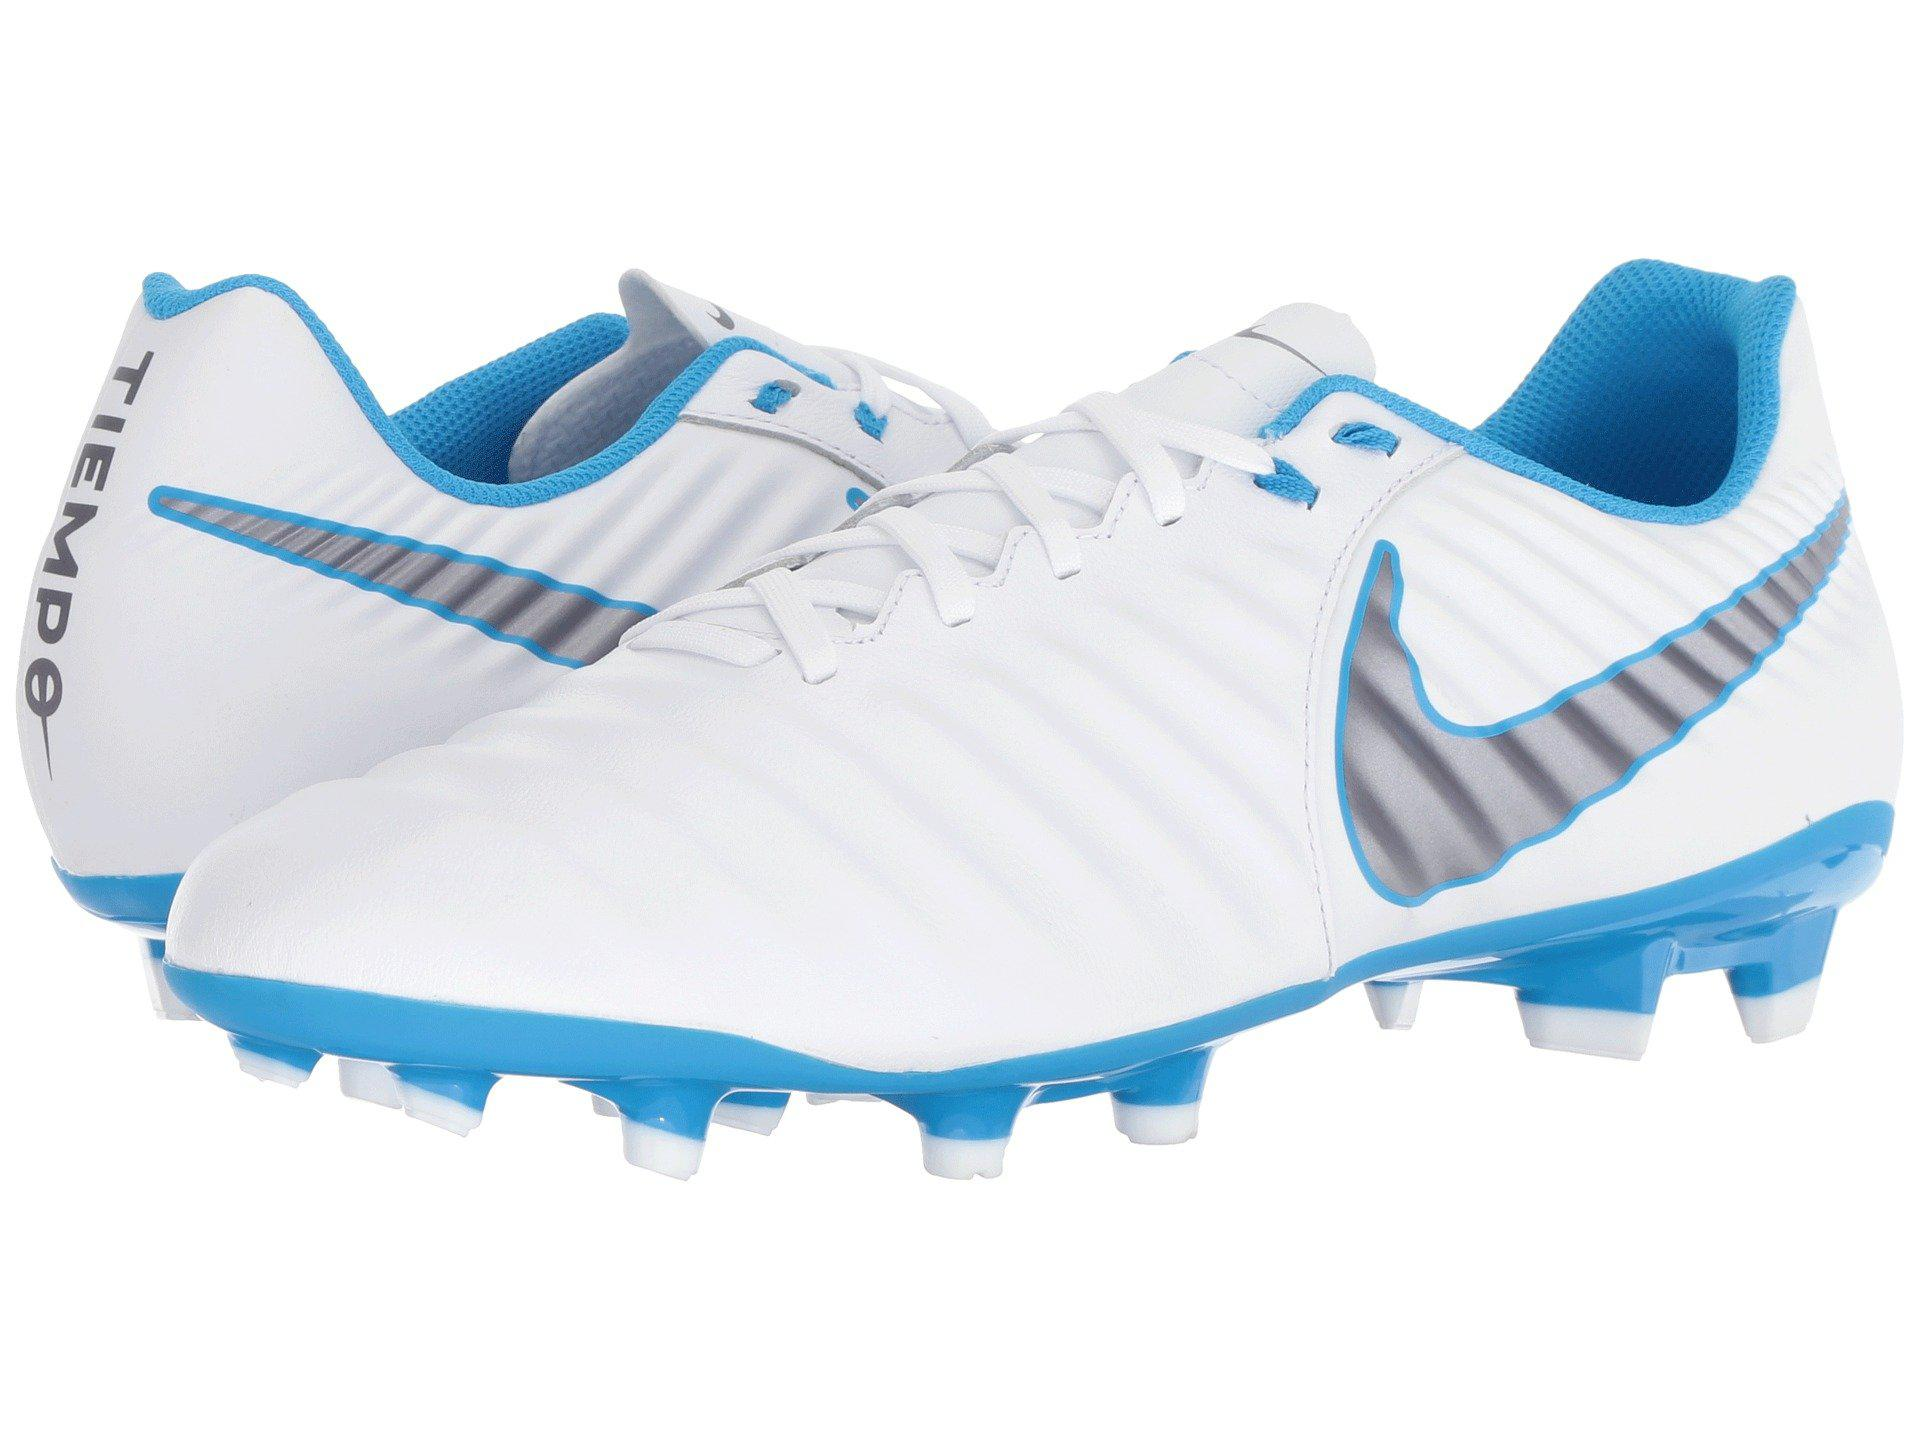 2b44ce9cbee Nike Tiempo Legend 7 Academy Fg in Blue for Men - Save 54% - Lyst